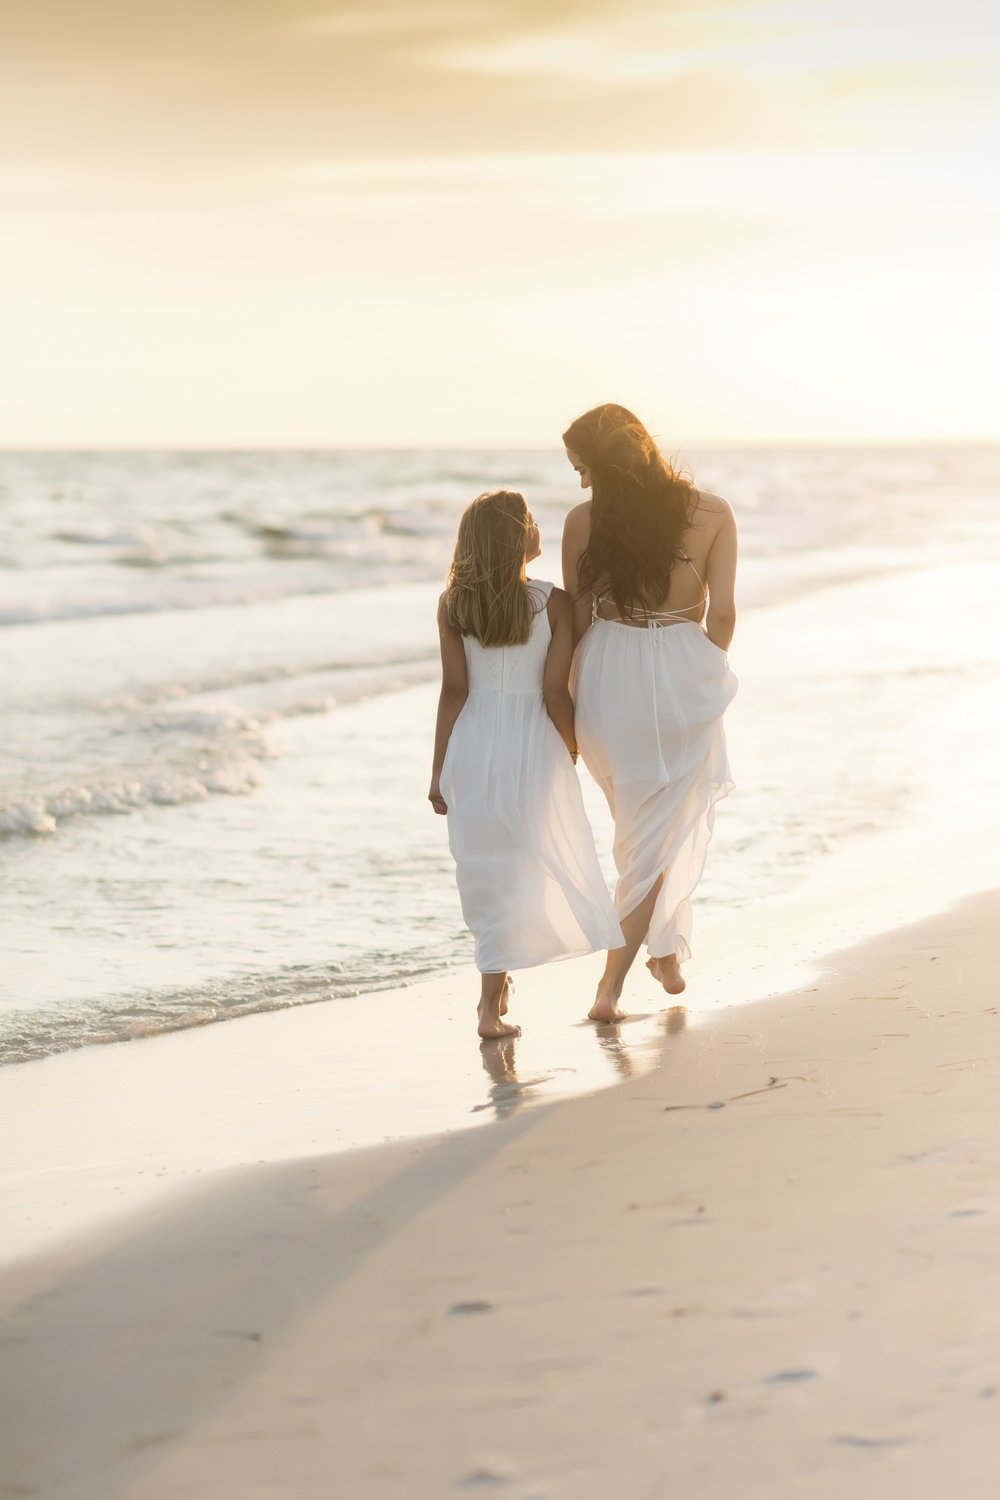 Vacationing mother and daughter walk during beach session